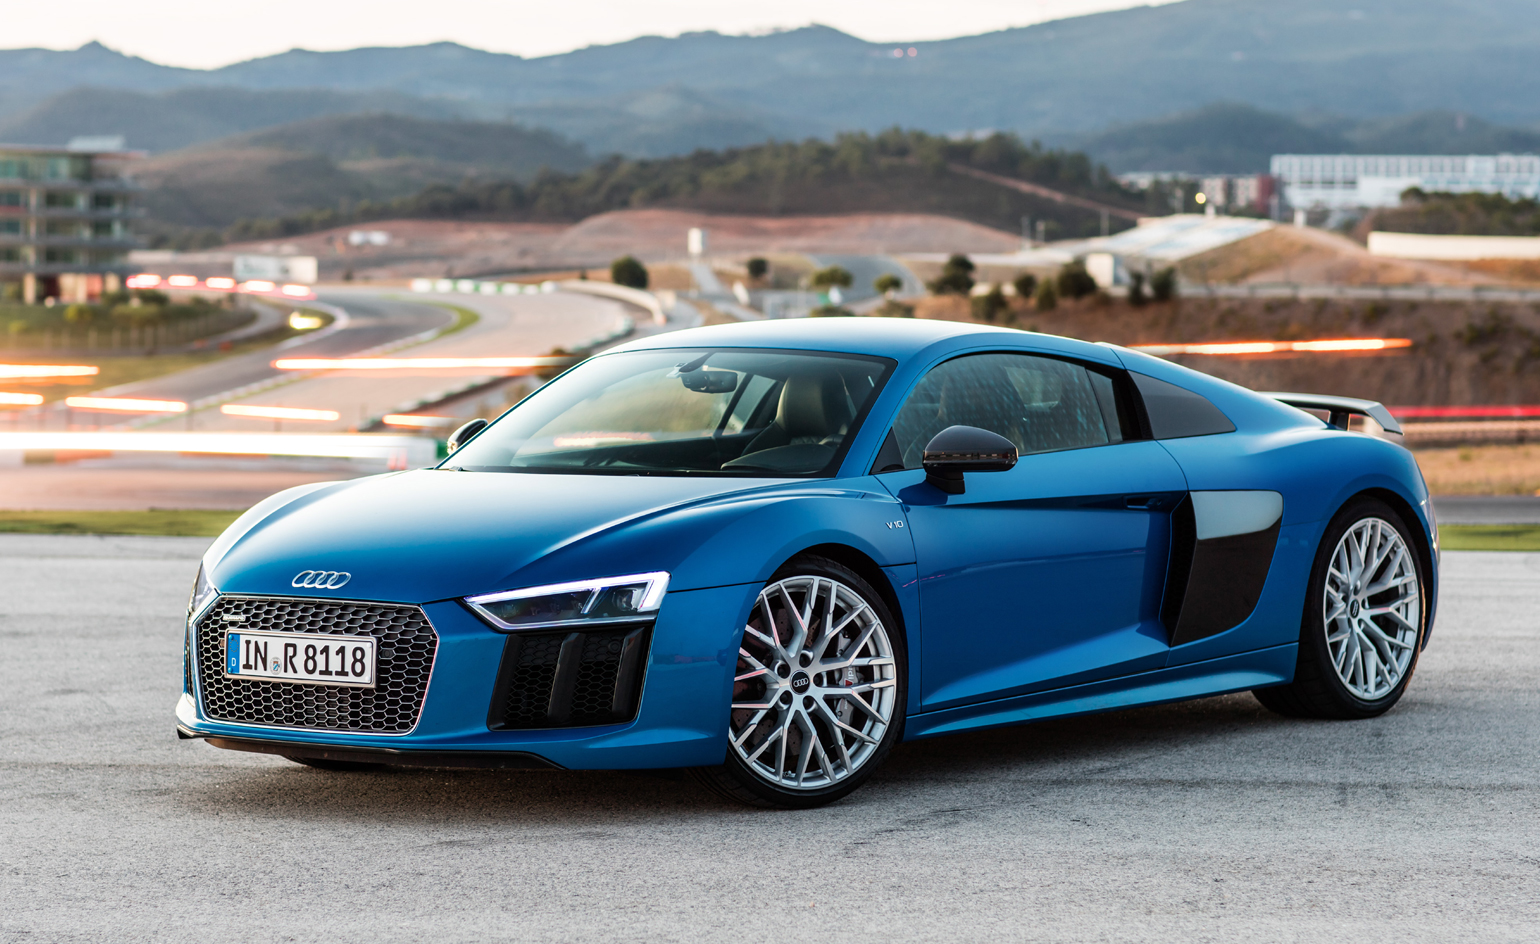 Introducing The Audi R8 Coupe V10 Plus Wallpaper